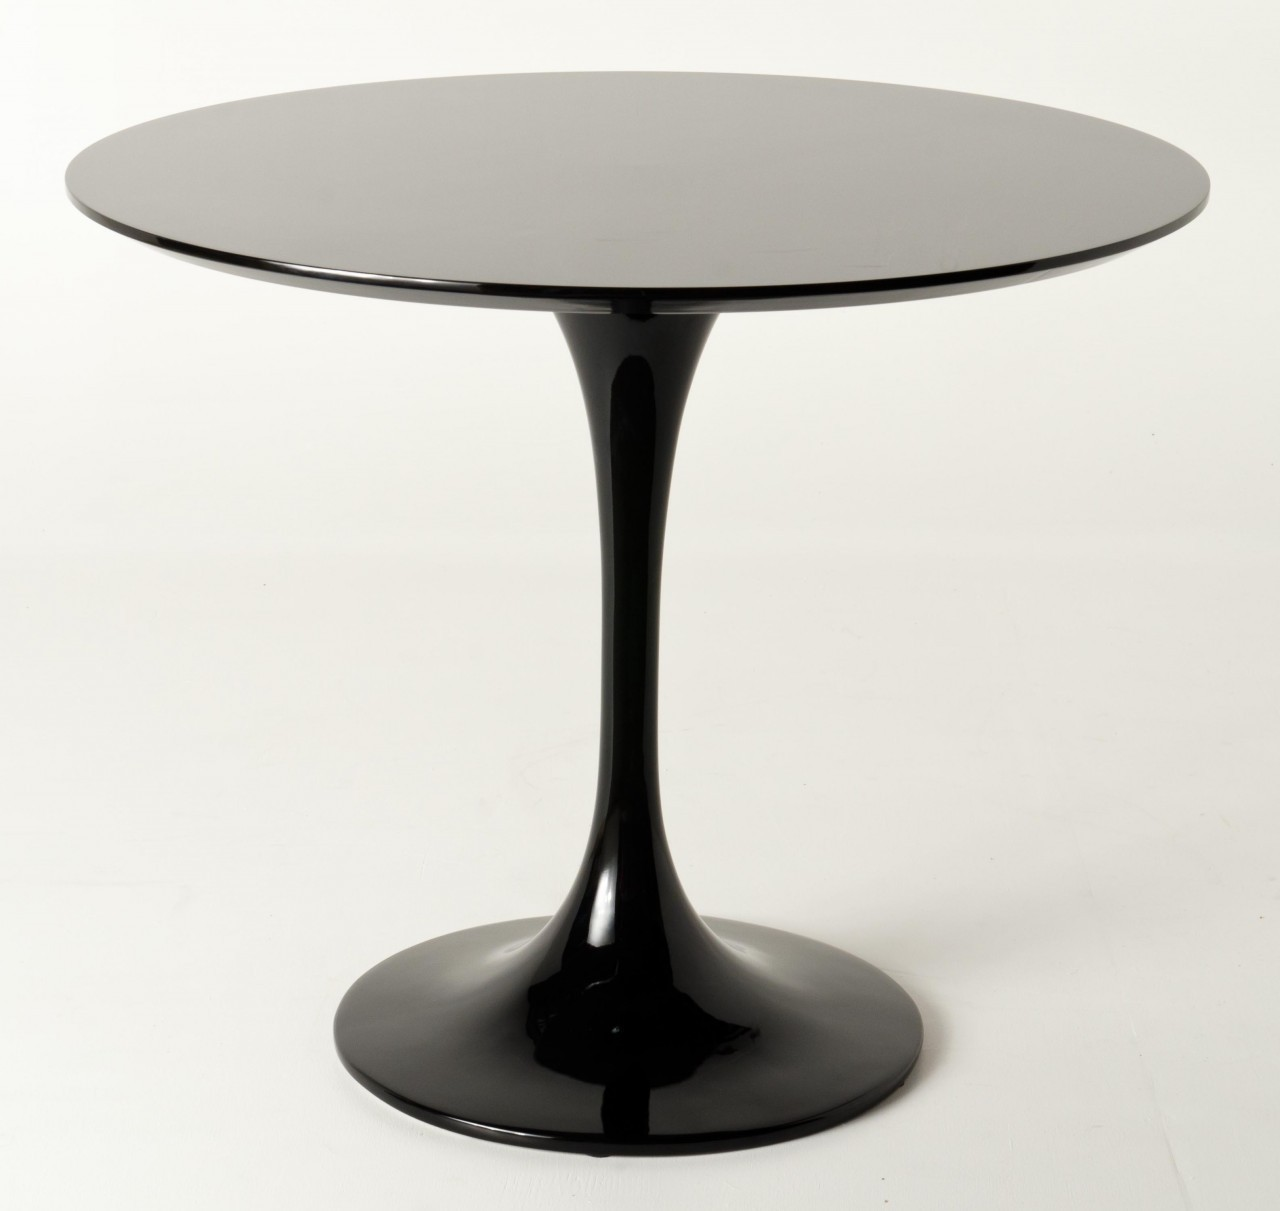 Eero saarinen dining table tulip table 80cm design for Table induction 90 cm